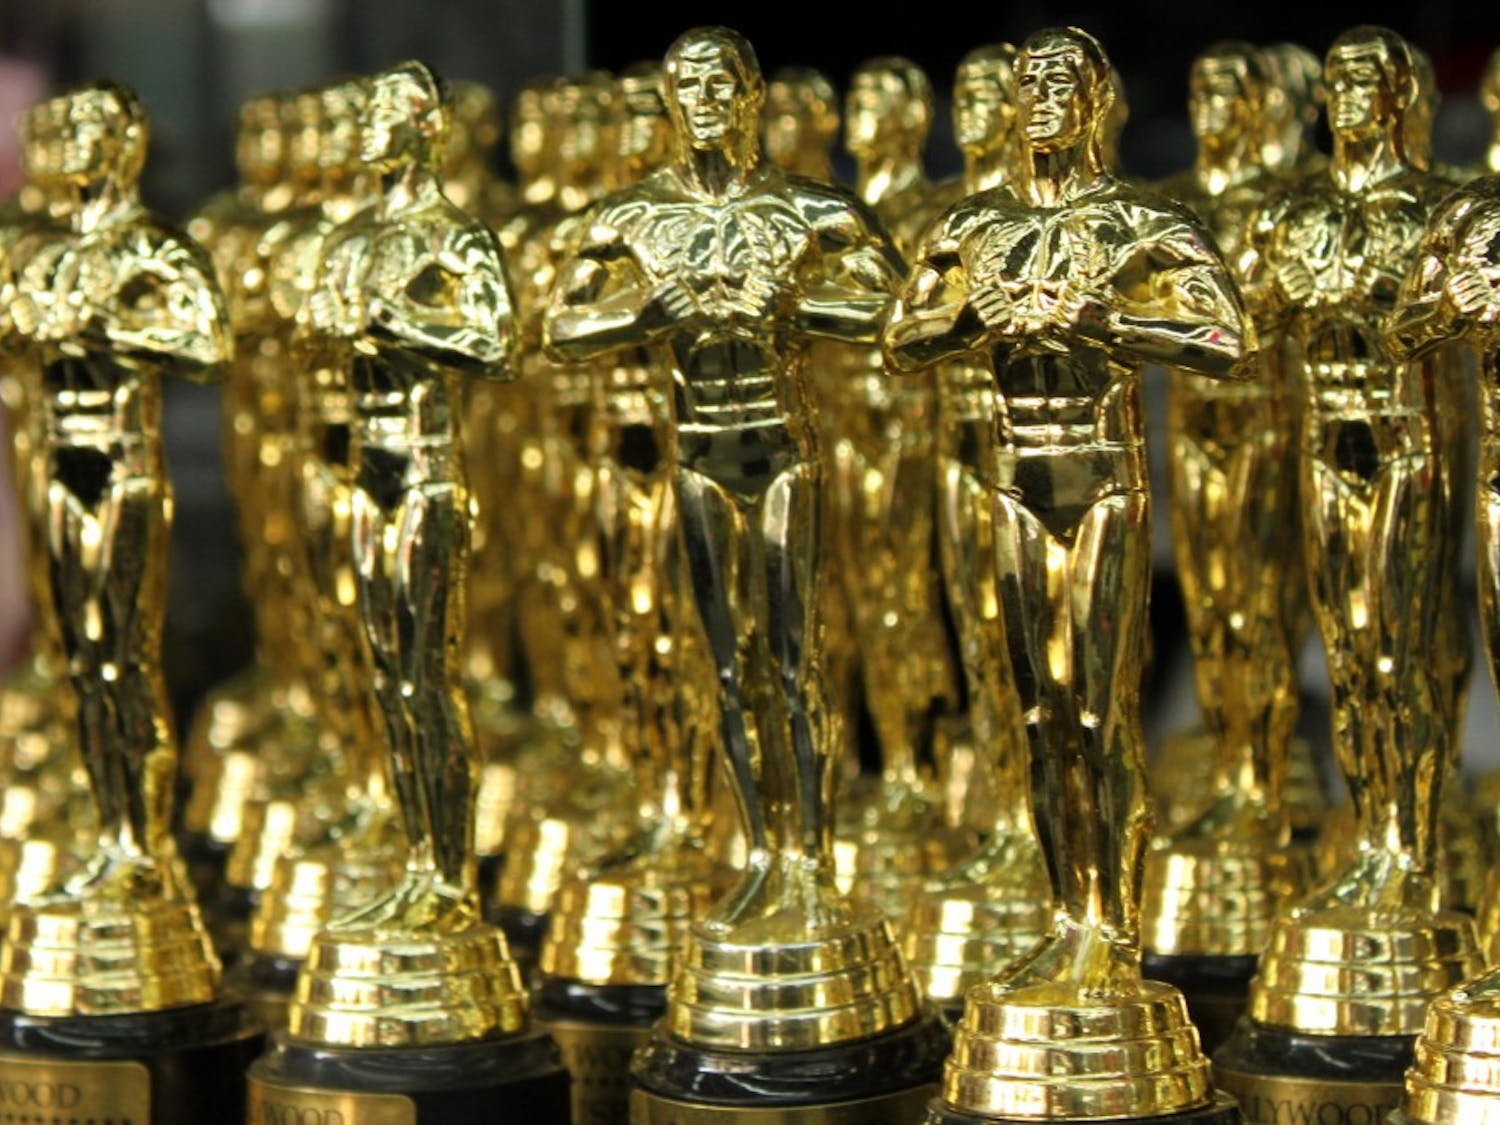 The 2016 Oscars proved to be a decisive ceremony for the film industry.